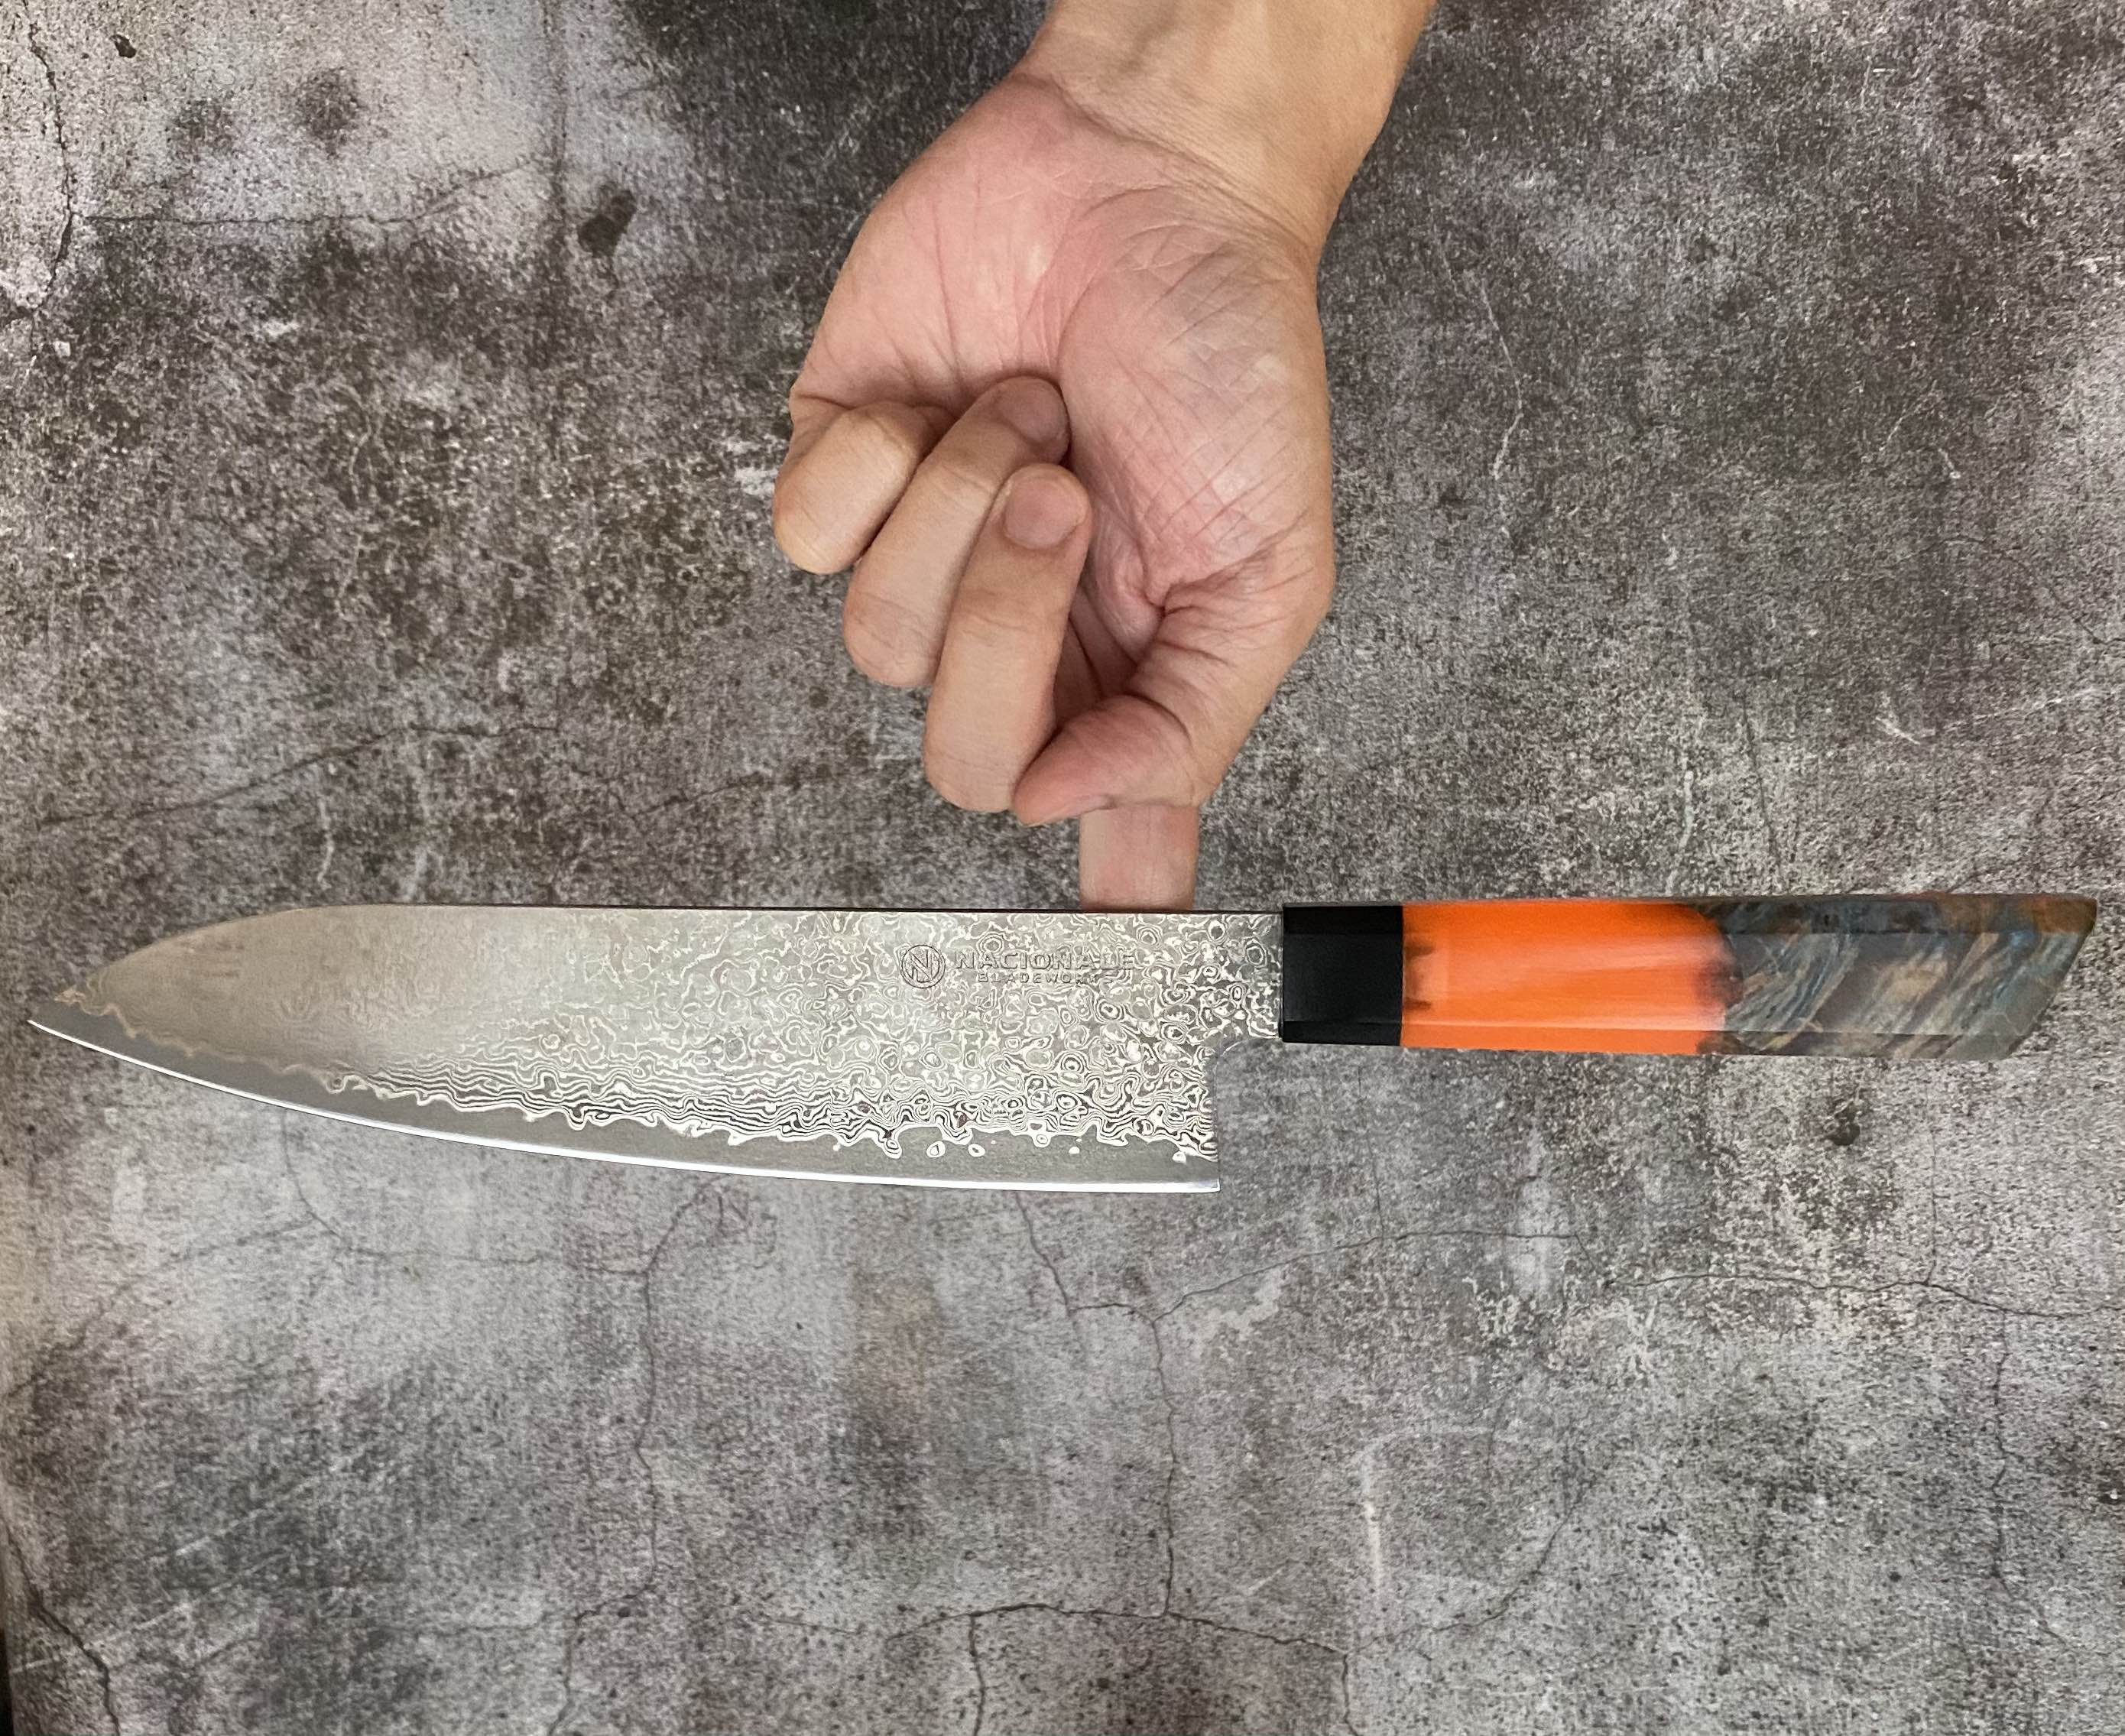 215mm Damascus Tall Gyuto. Stabilized Maple + Orange Resin Handle. G10 Ferrule